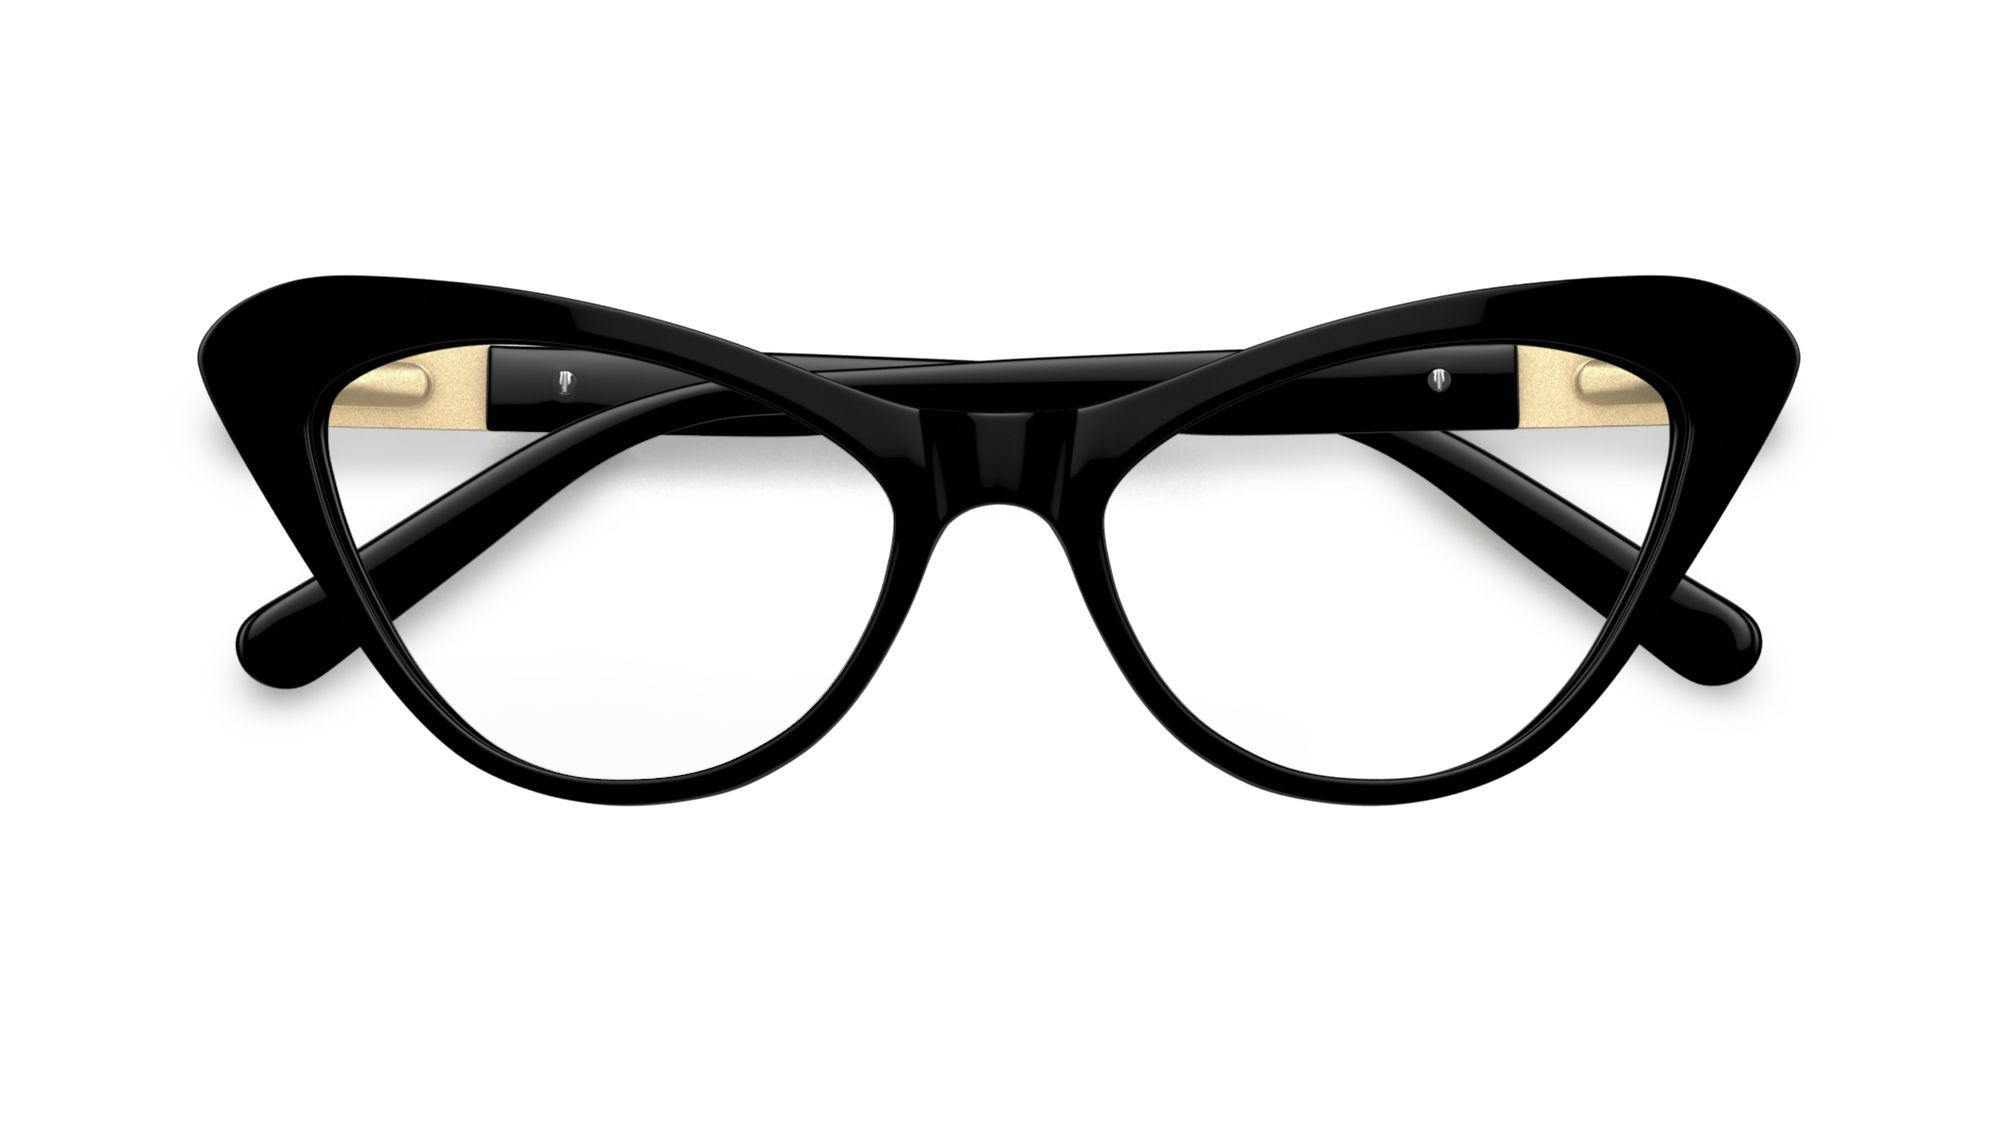 651ed32226a Love Moschino glasses - LM 07